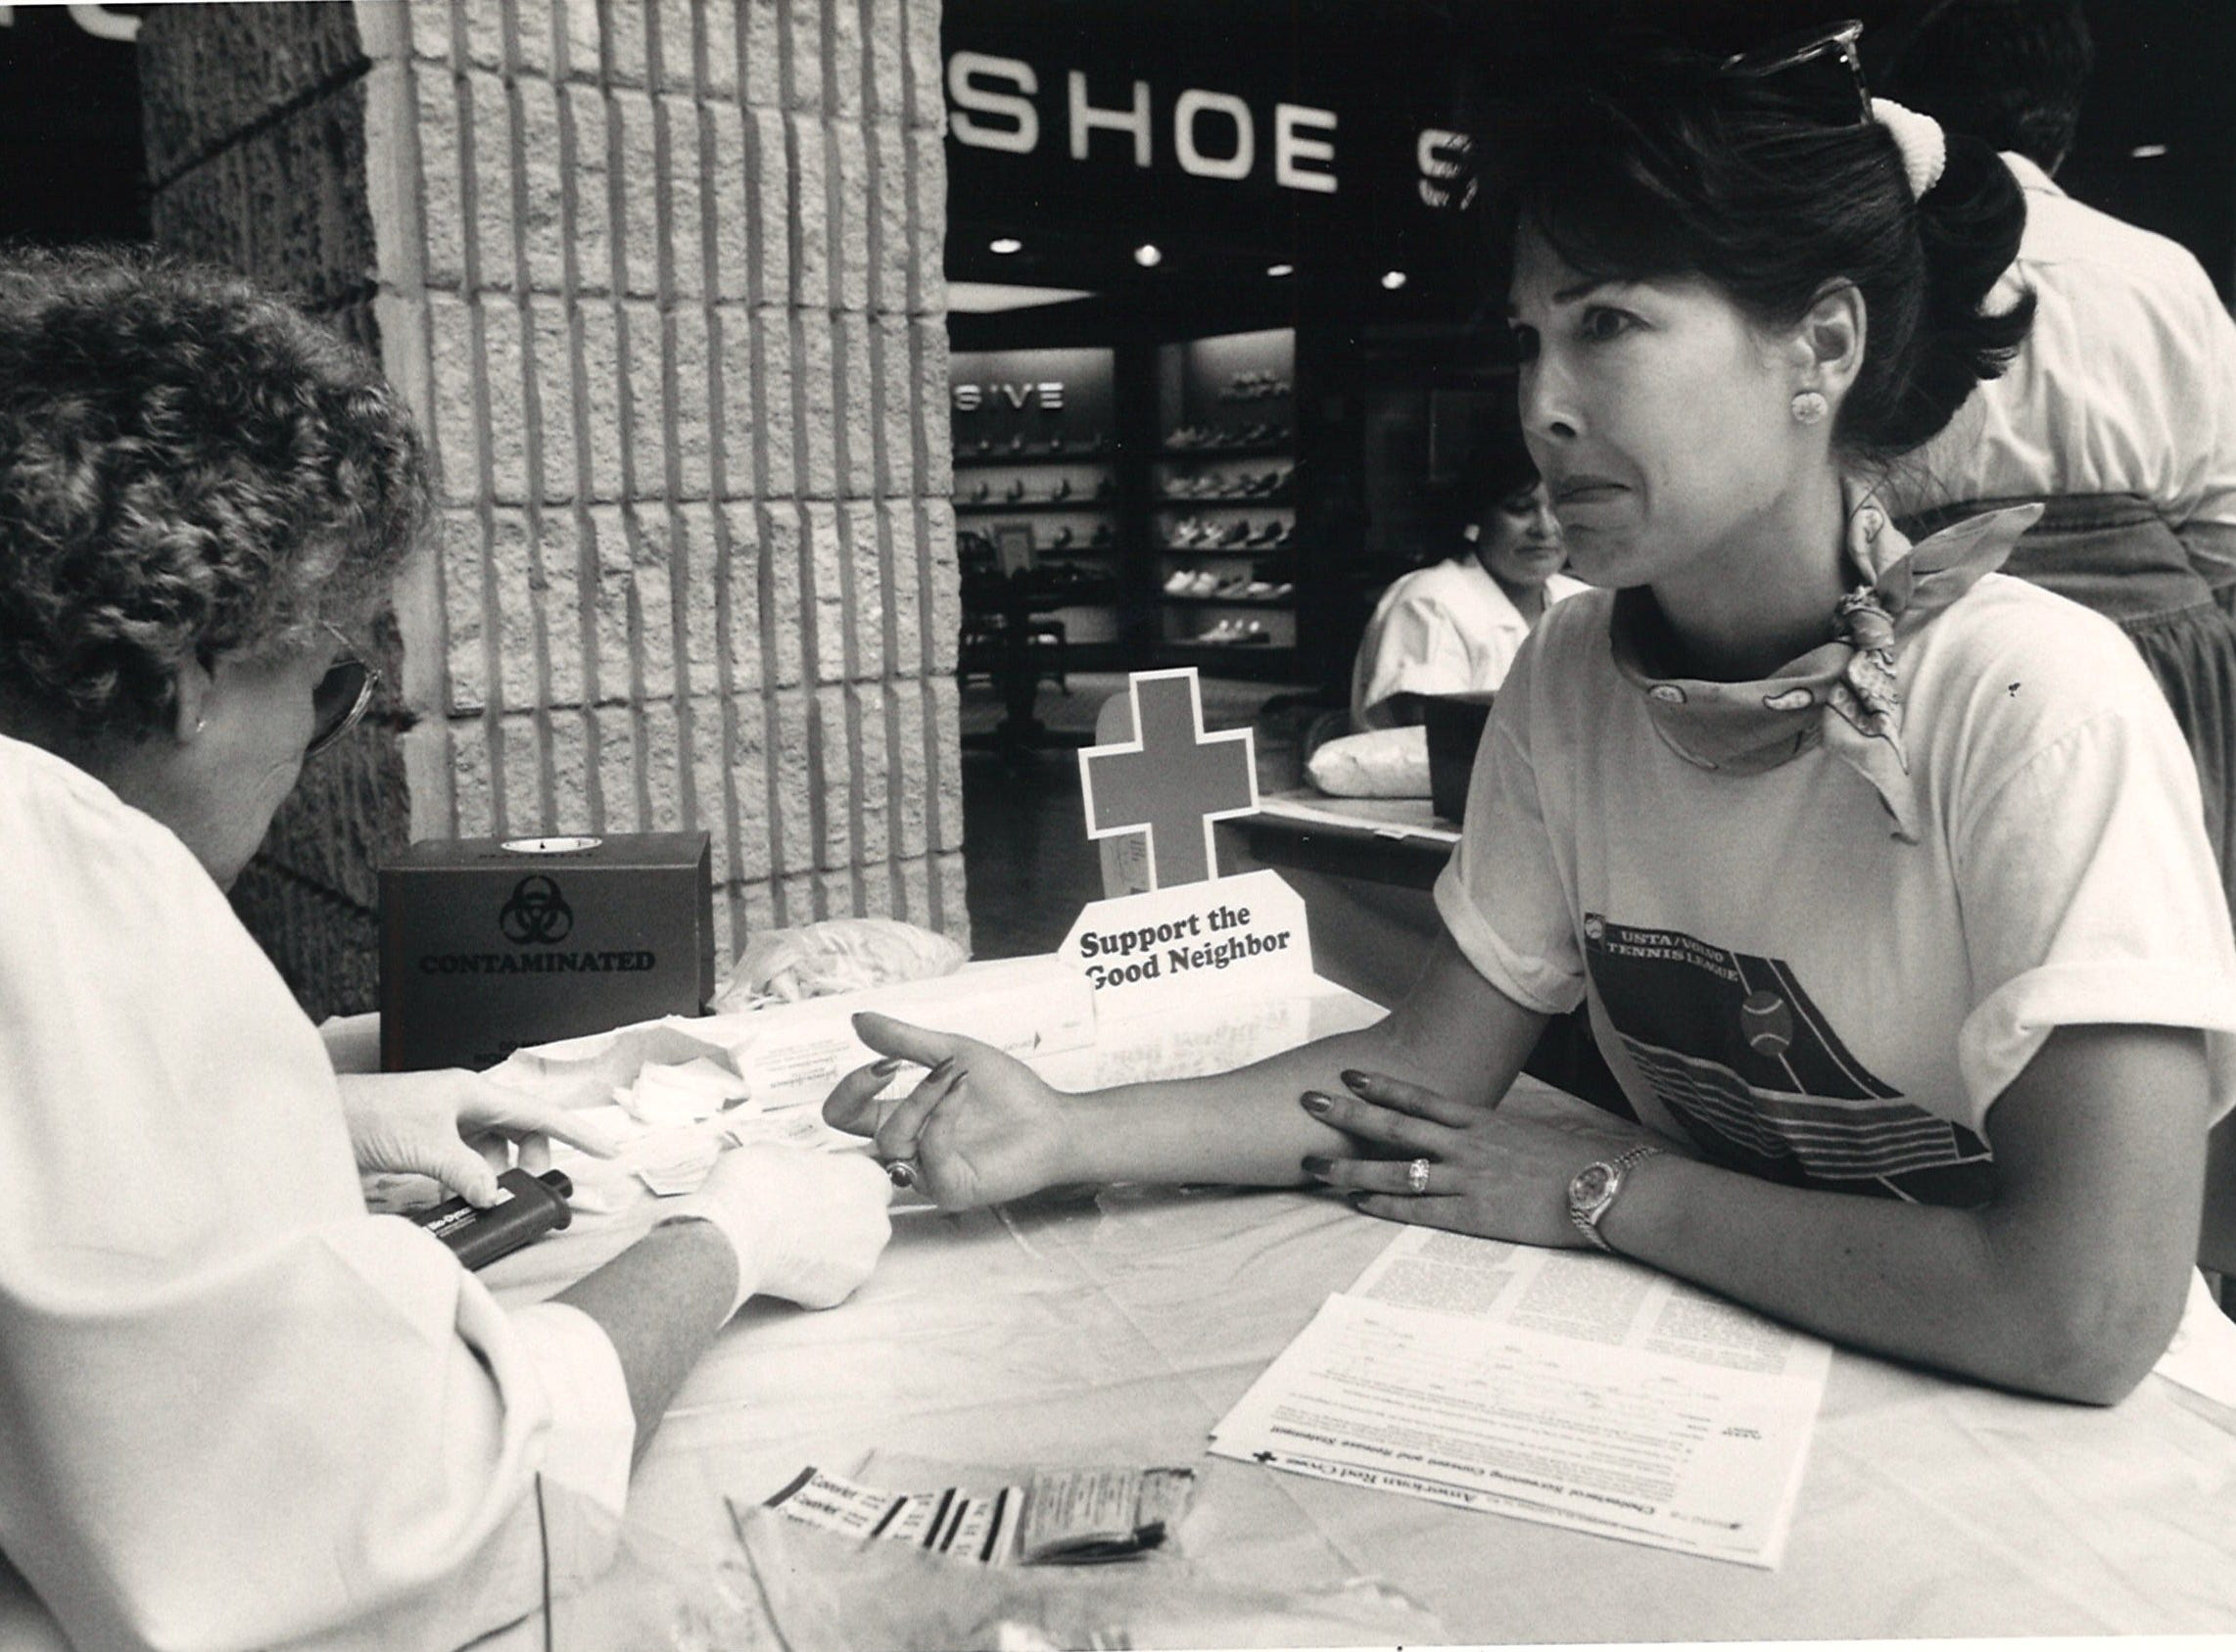 Grimacing at the prospect of having her finger speared by LNV Velma Atkins, Linda Herndon bites her lip waiting for the pain during $5 cholesterol testing at Sunrise Mall on Oct. 16, 1987.